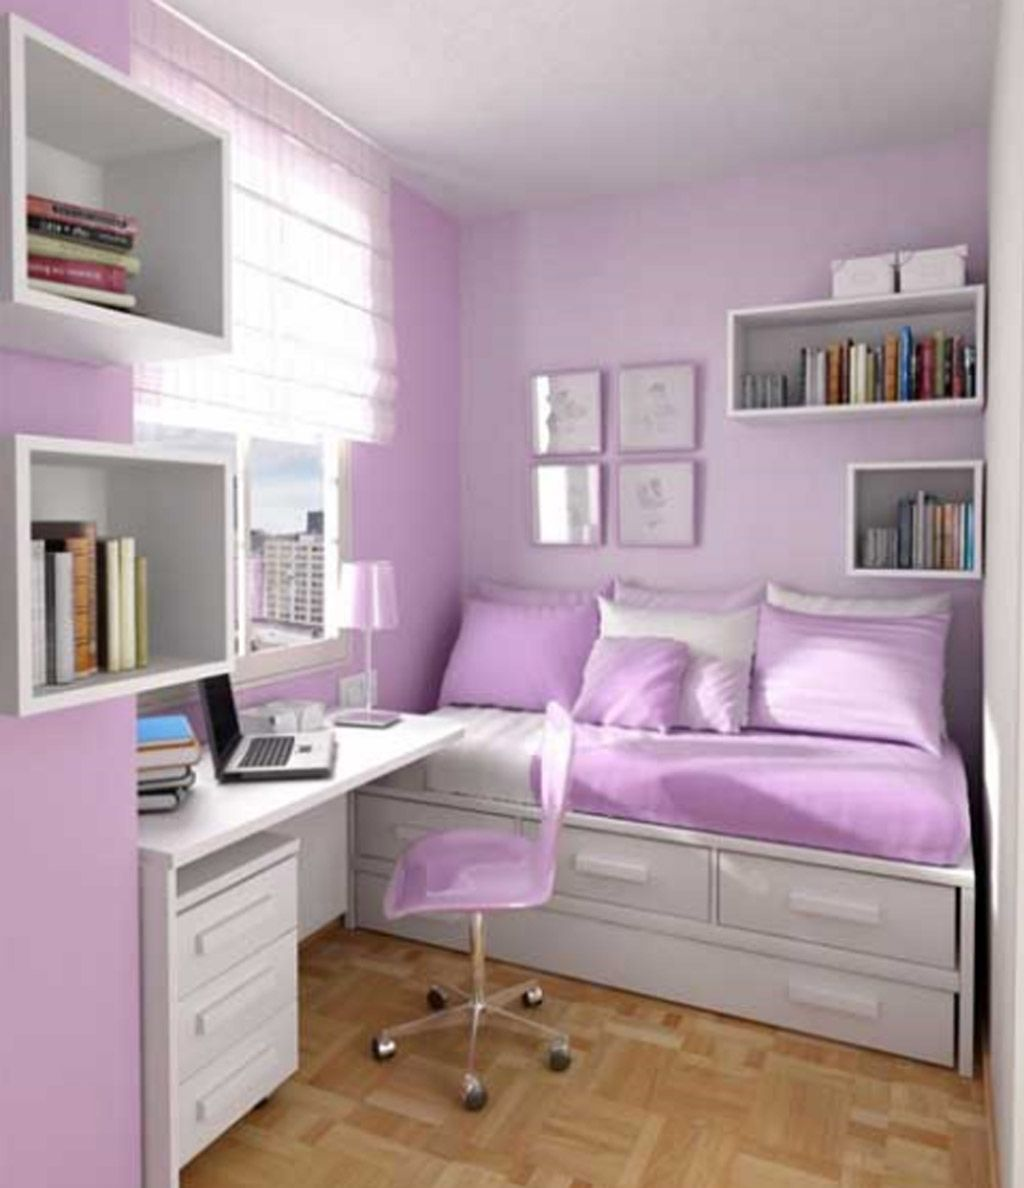 Bedroom designs ideas for teenage girls - Cute Bedroom Ideas For Teenage Girls Best Interior Design Blogs Fashion Pinterest